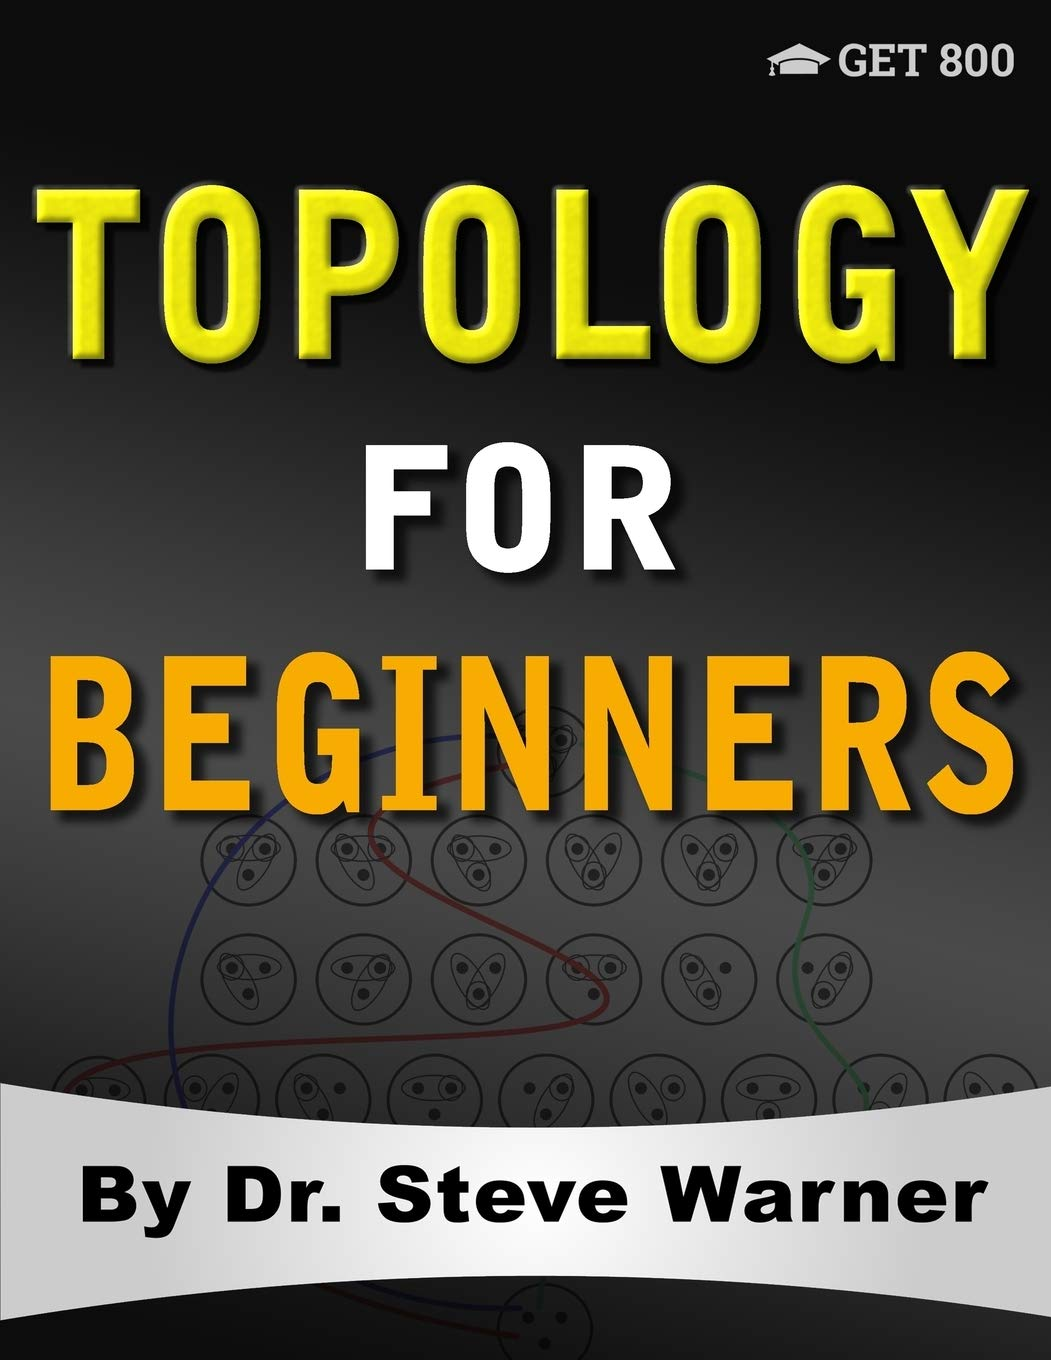 Image OfTopology For Beginners: A Rigorous Introduction To Set Theory, Topological Spaces, Continuity, Separation, Countability, M...